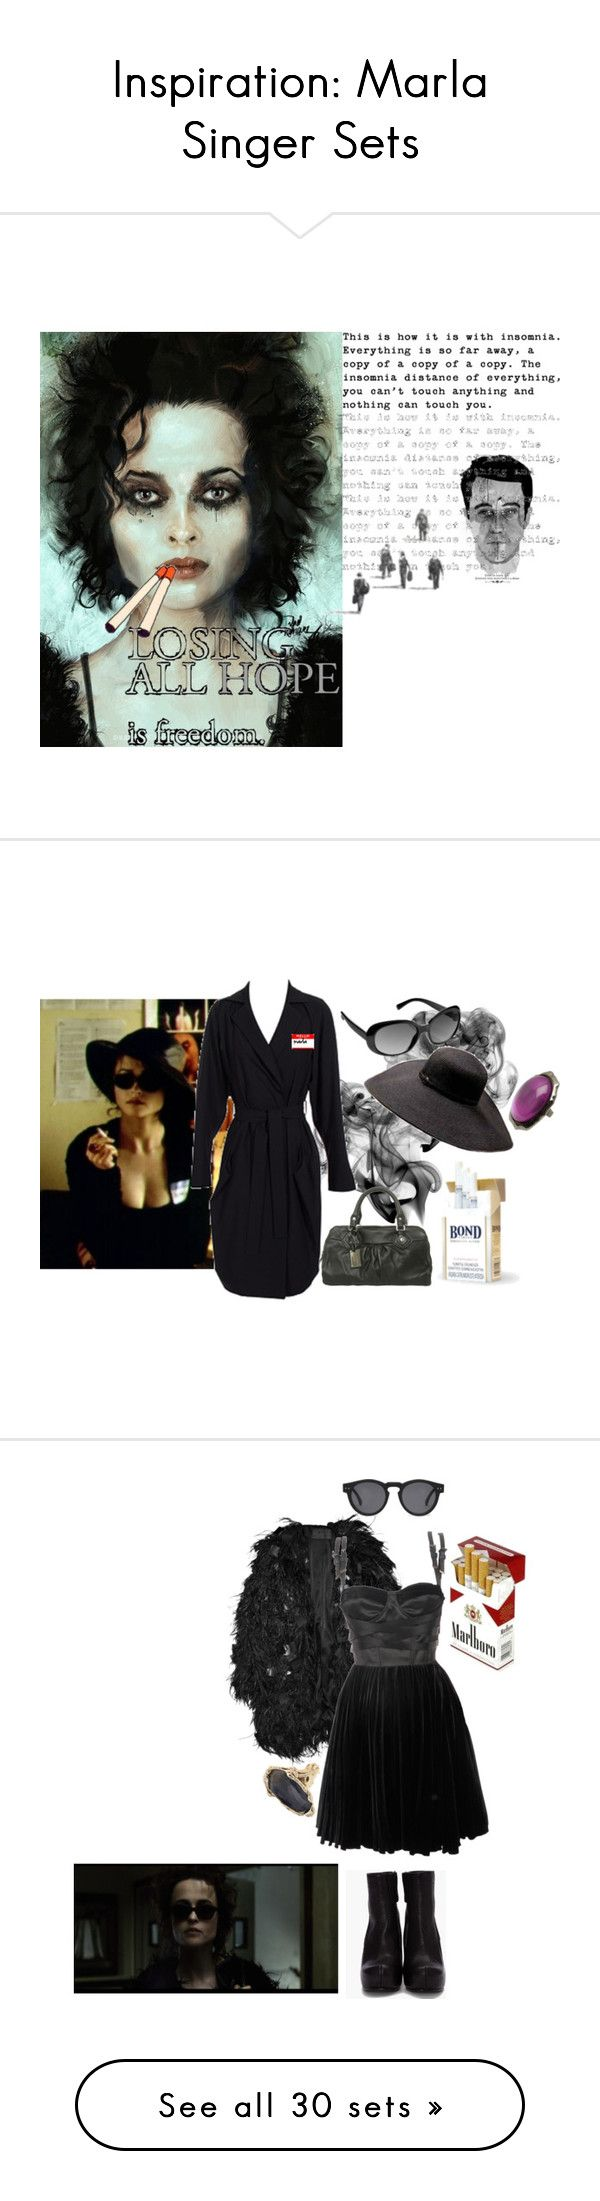 """Inspiration: Marla Singer Sets"" by skeletorsmom ❤ liked on Polyvore featuring art, book, fight club, tyler durden, chuck palahniuk, smoking, quotes, film, marla singer and Jil Sander"